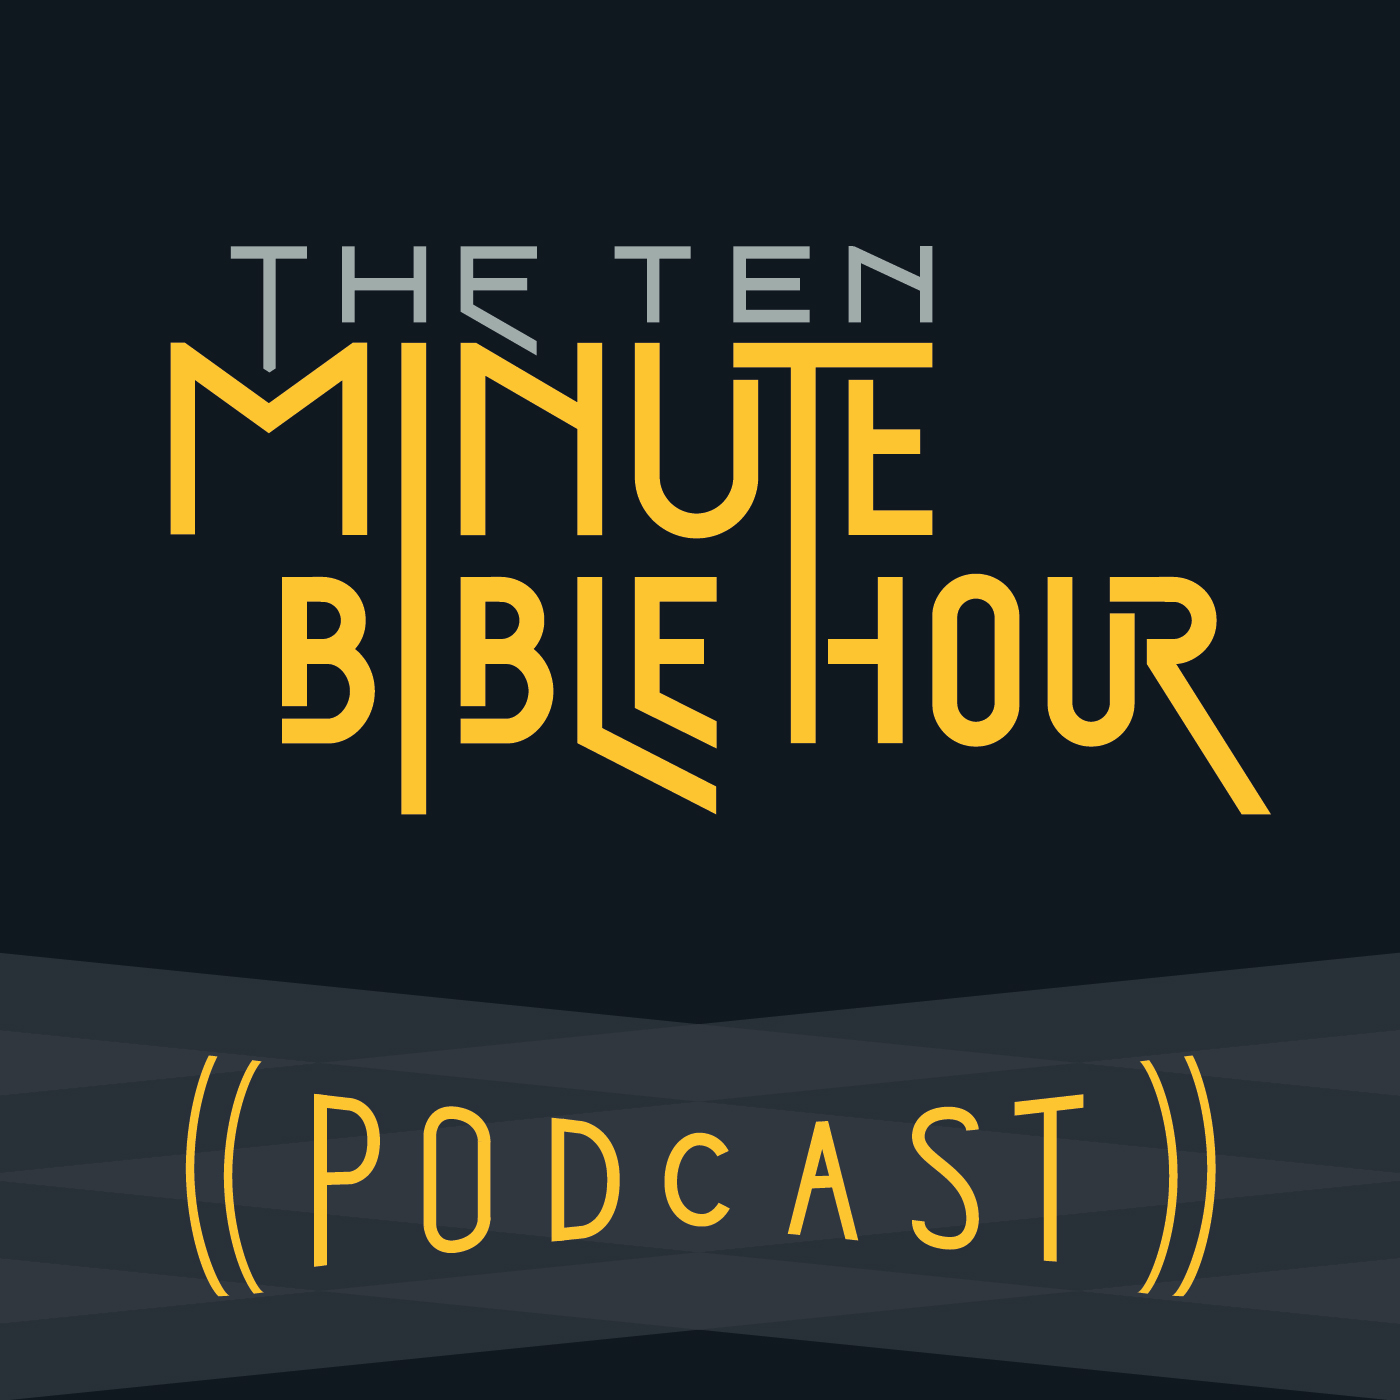 The Ten Minute Bible Hour Podcast show art